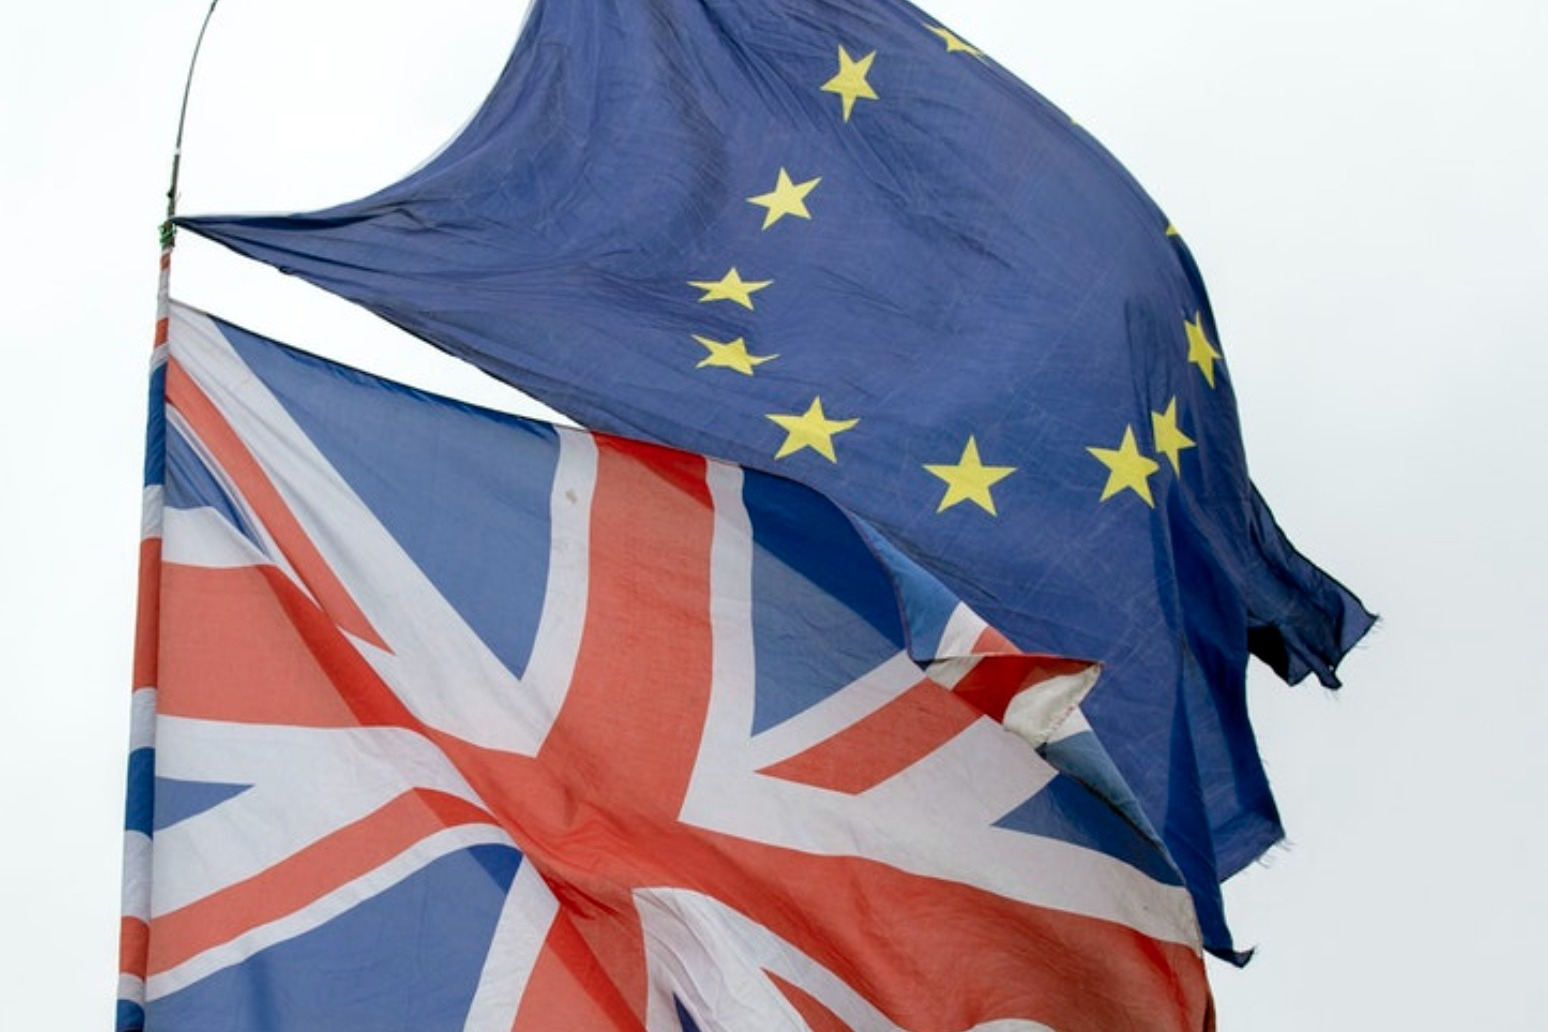 Trade talks in the balance after the UK rejects EU ultimatum